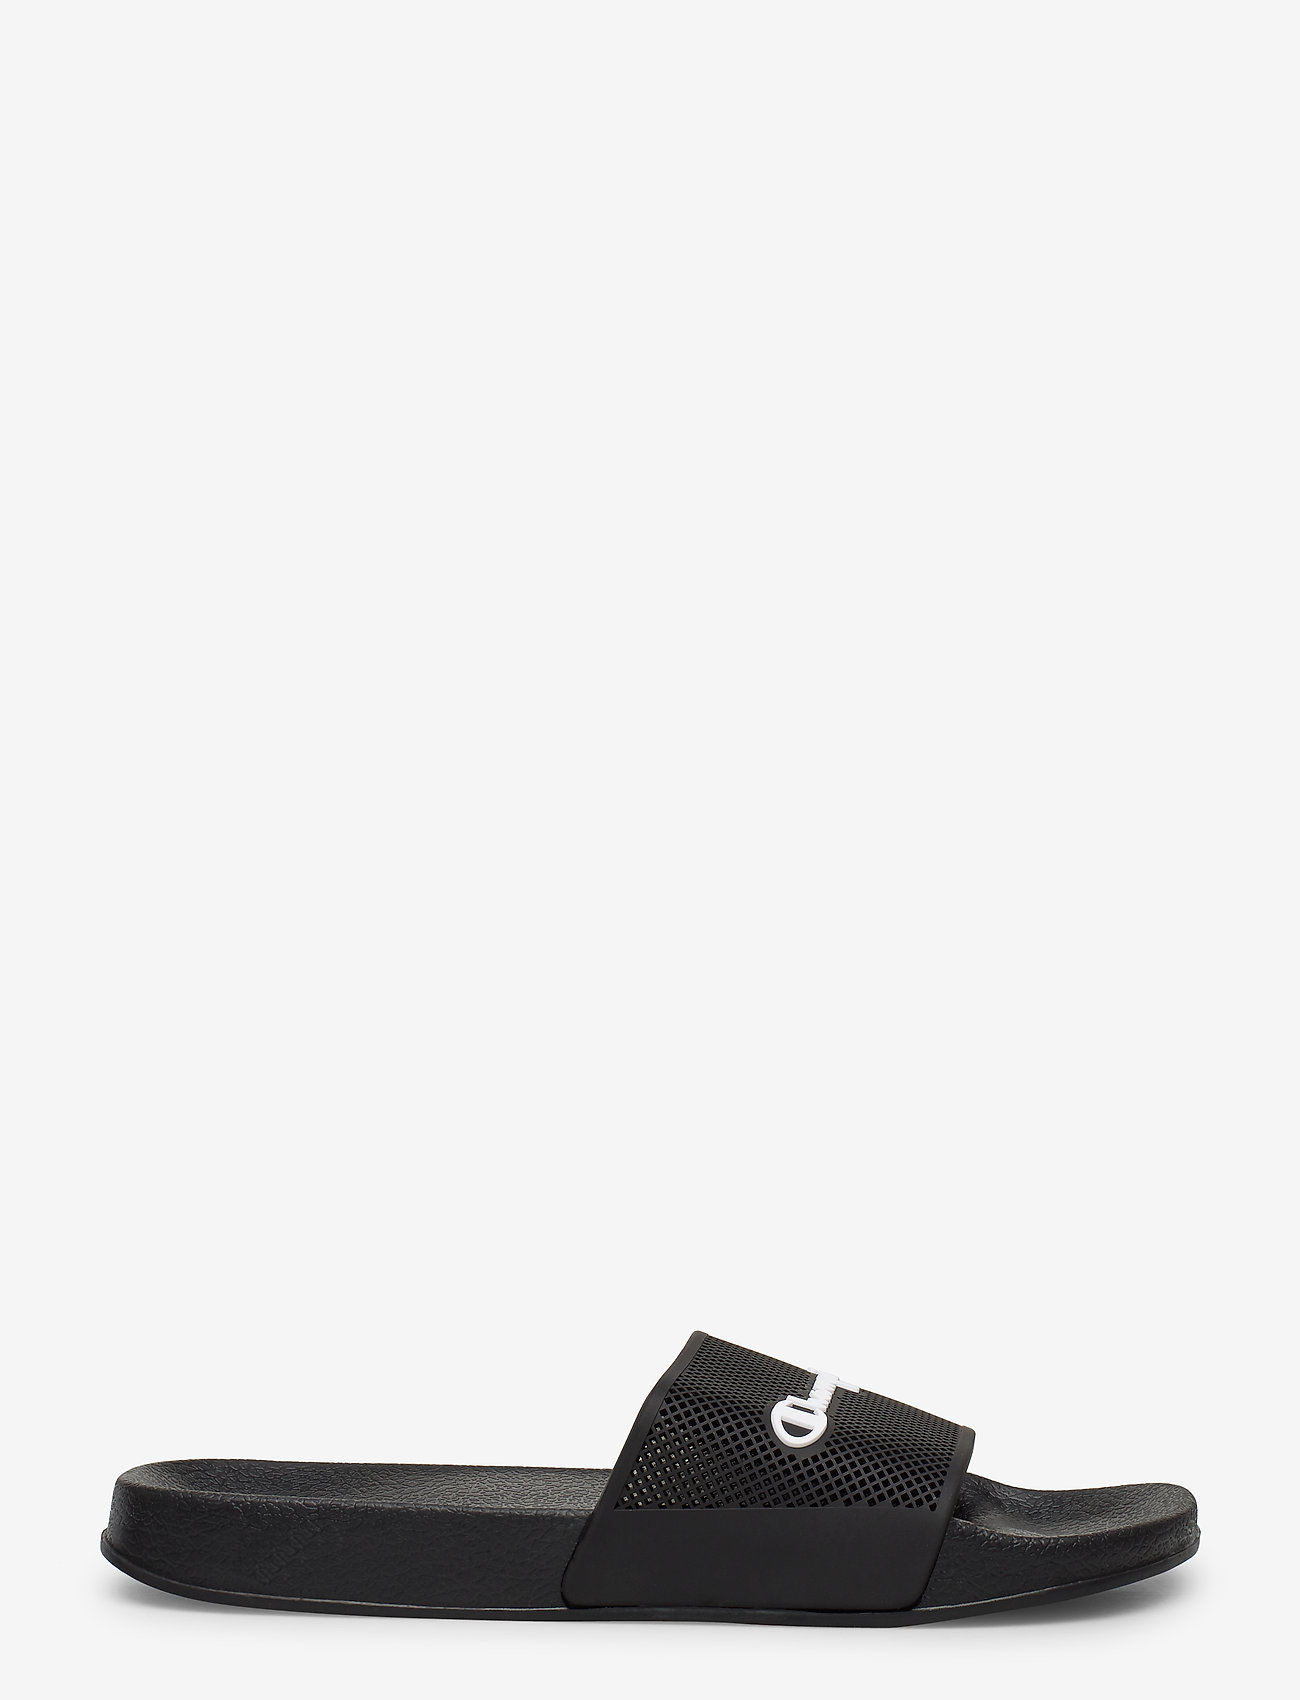 Champion - Sandal DAYTONA - pool sliders - black beauty - 1